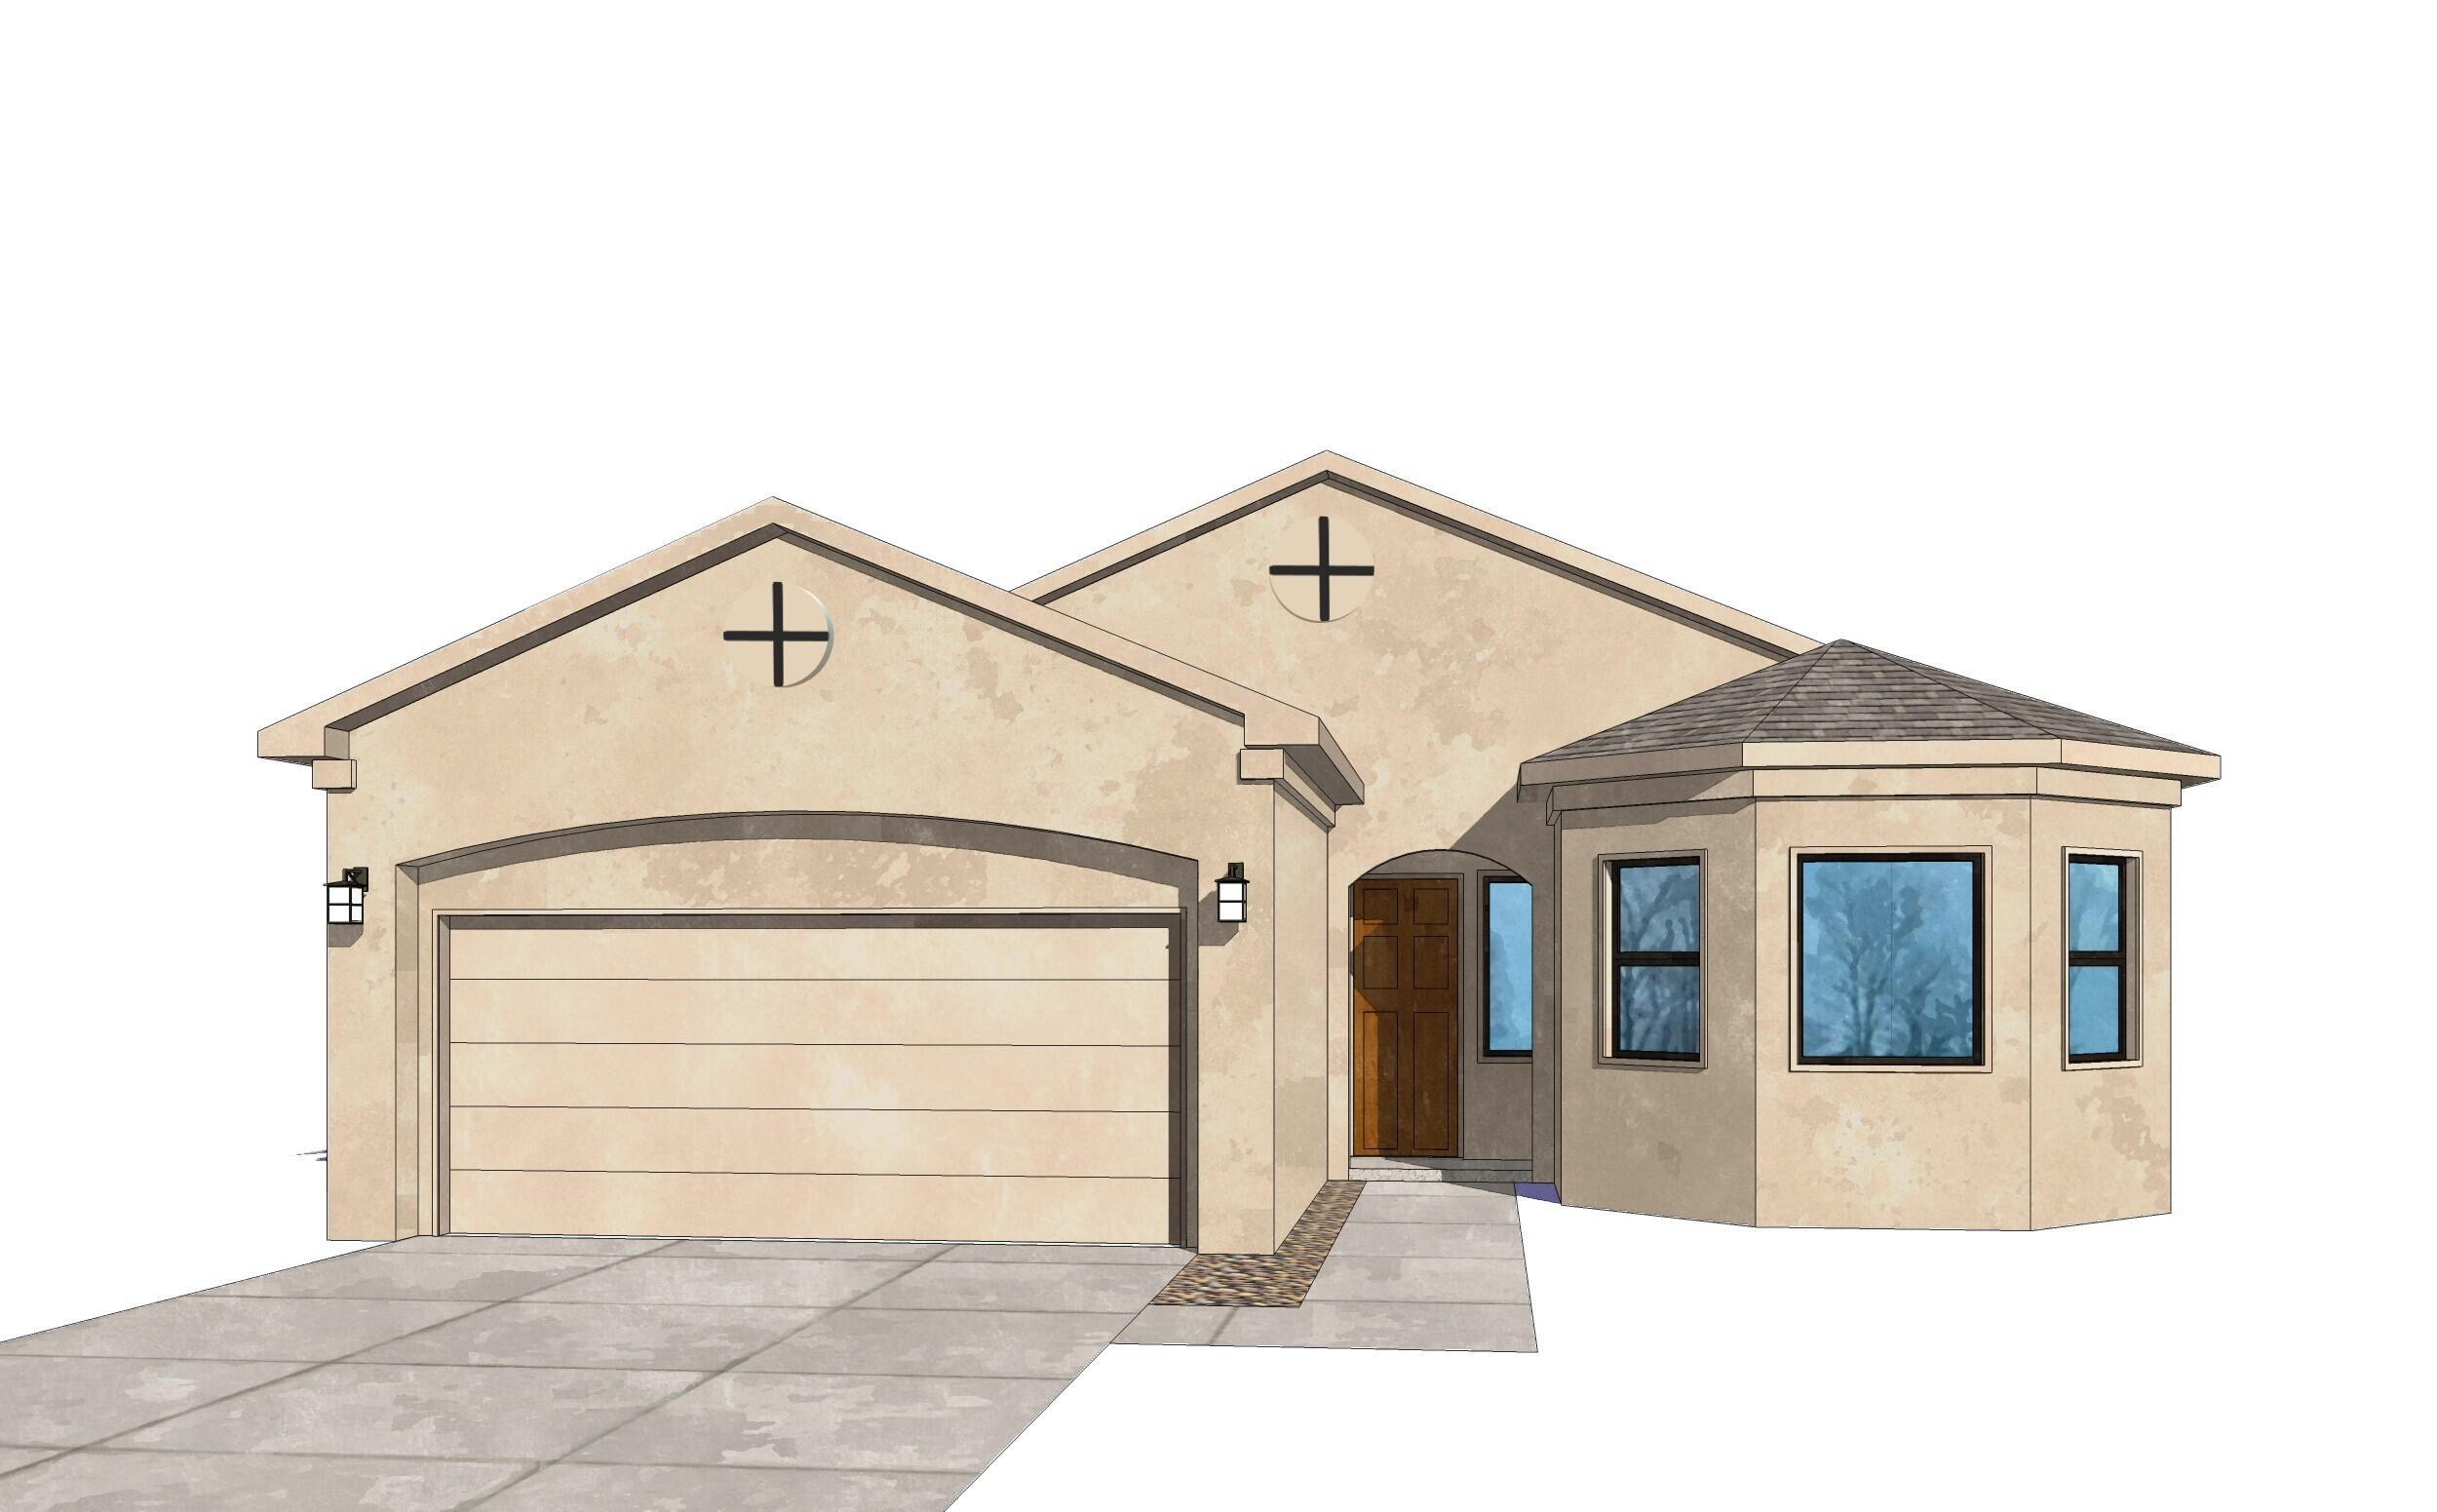 Pics are of model.Actual selections and colors vary. This home will be starting soon in Volterra. Now is the time to lock in your low interest rate, price and make your own selections on carpet, tile, paint, stucco and granite! Then sit back and watch your dream home emerge. A beautiful bay window sets off the front of this home bringing light and style to the dining area. Enjoy relaxing in front of your fireplace in the living room with large glass sliders that open to a spacious covered back patio. Large closets, beautiful appliances and spacious, open living spaces make this a great home for families, couples and singles. The NM Certified Silver energy rating and Samsung Energy efficient appliances are just a few of the many attractive features in this home that you won't want to miss.